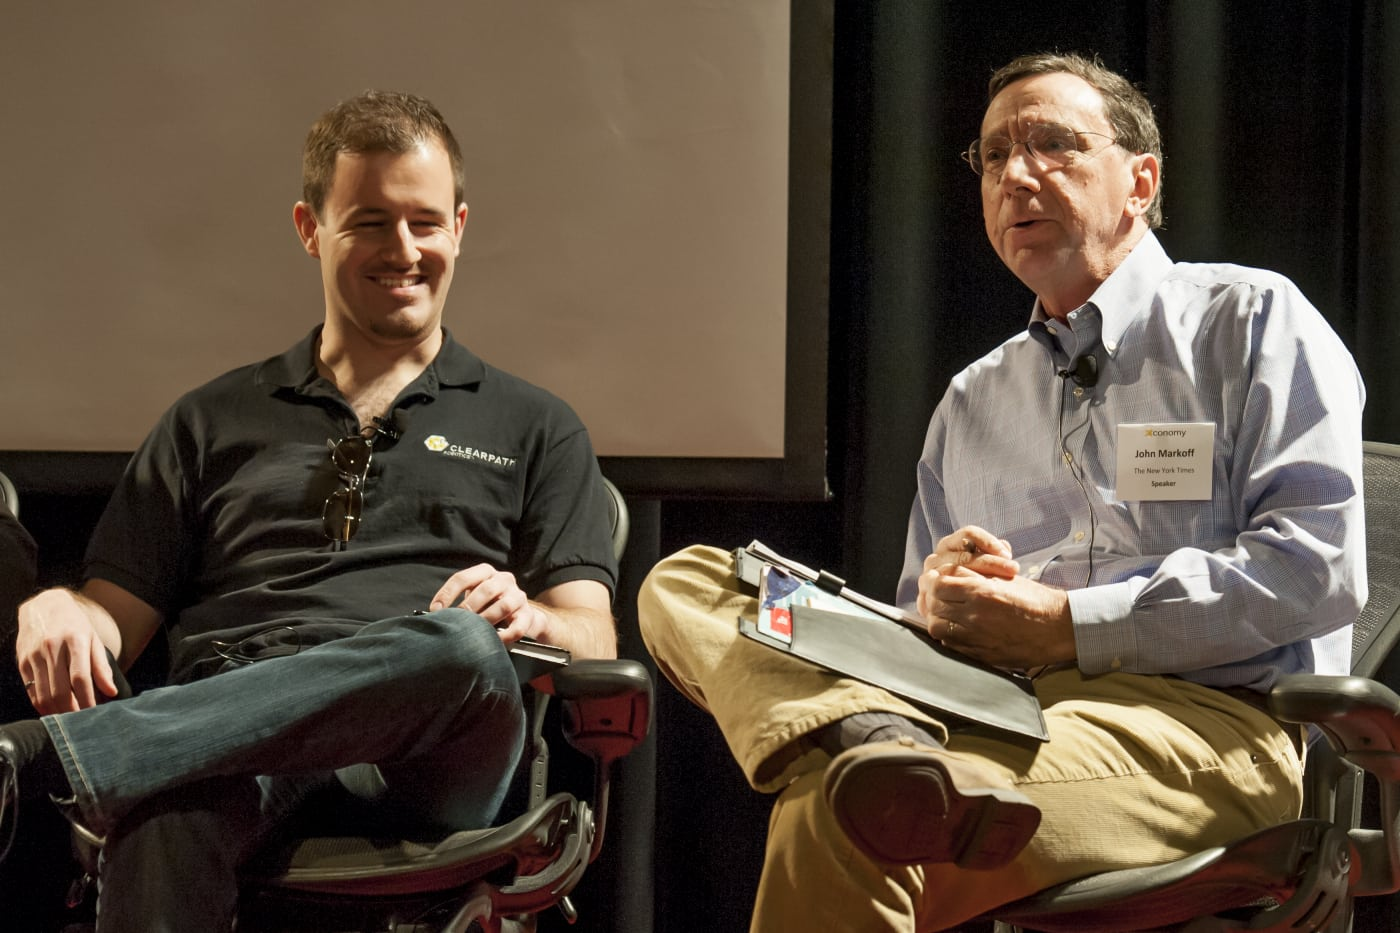 Ryan Gariepy, Clearpath, with John Markoff